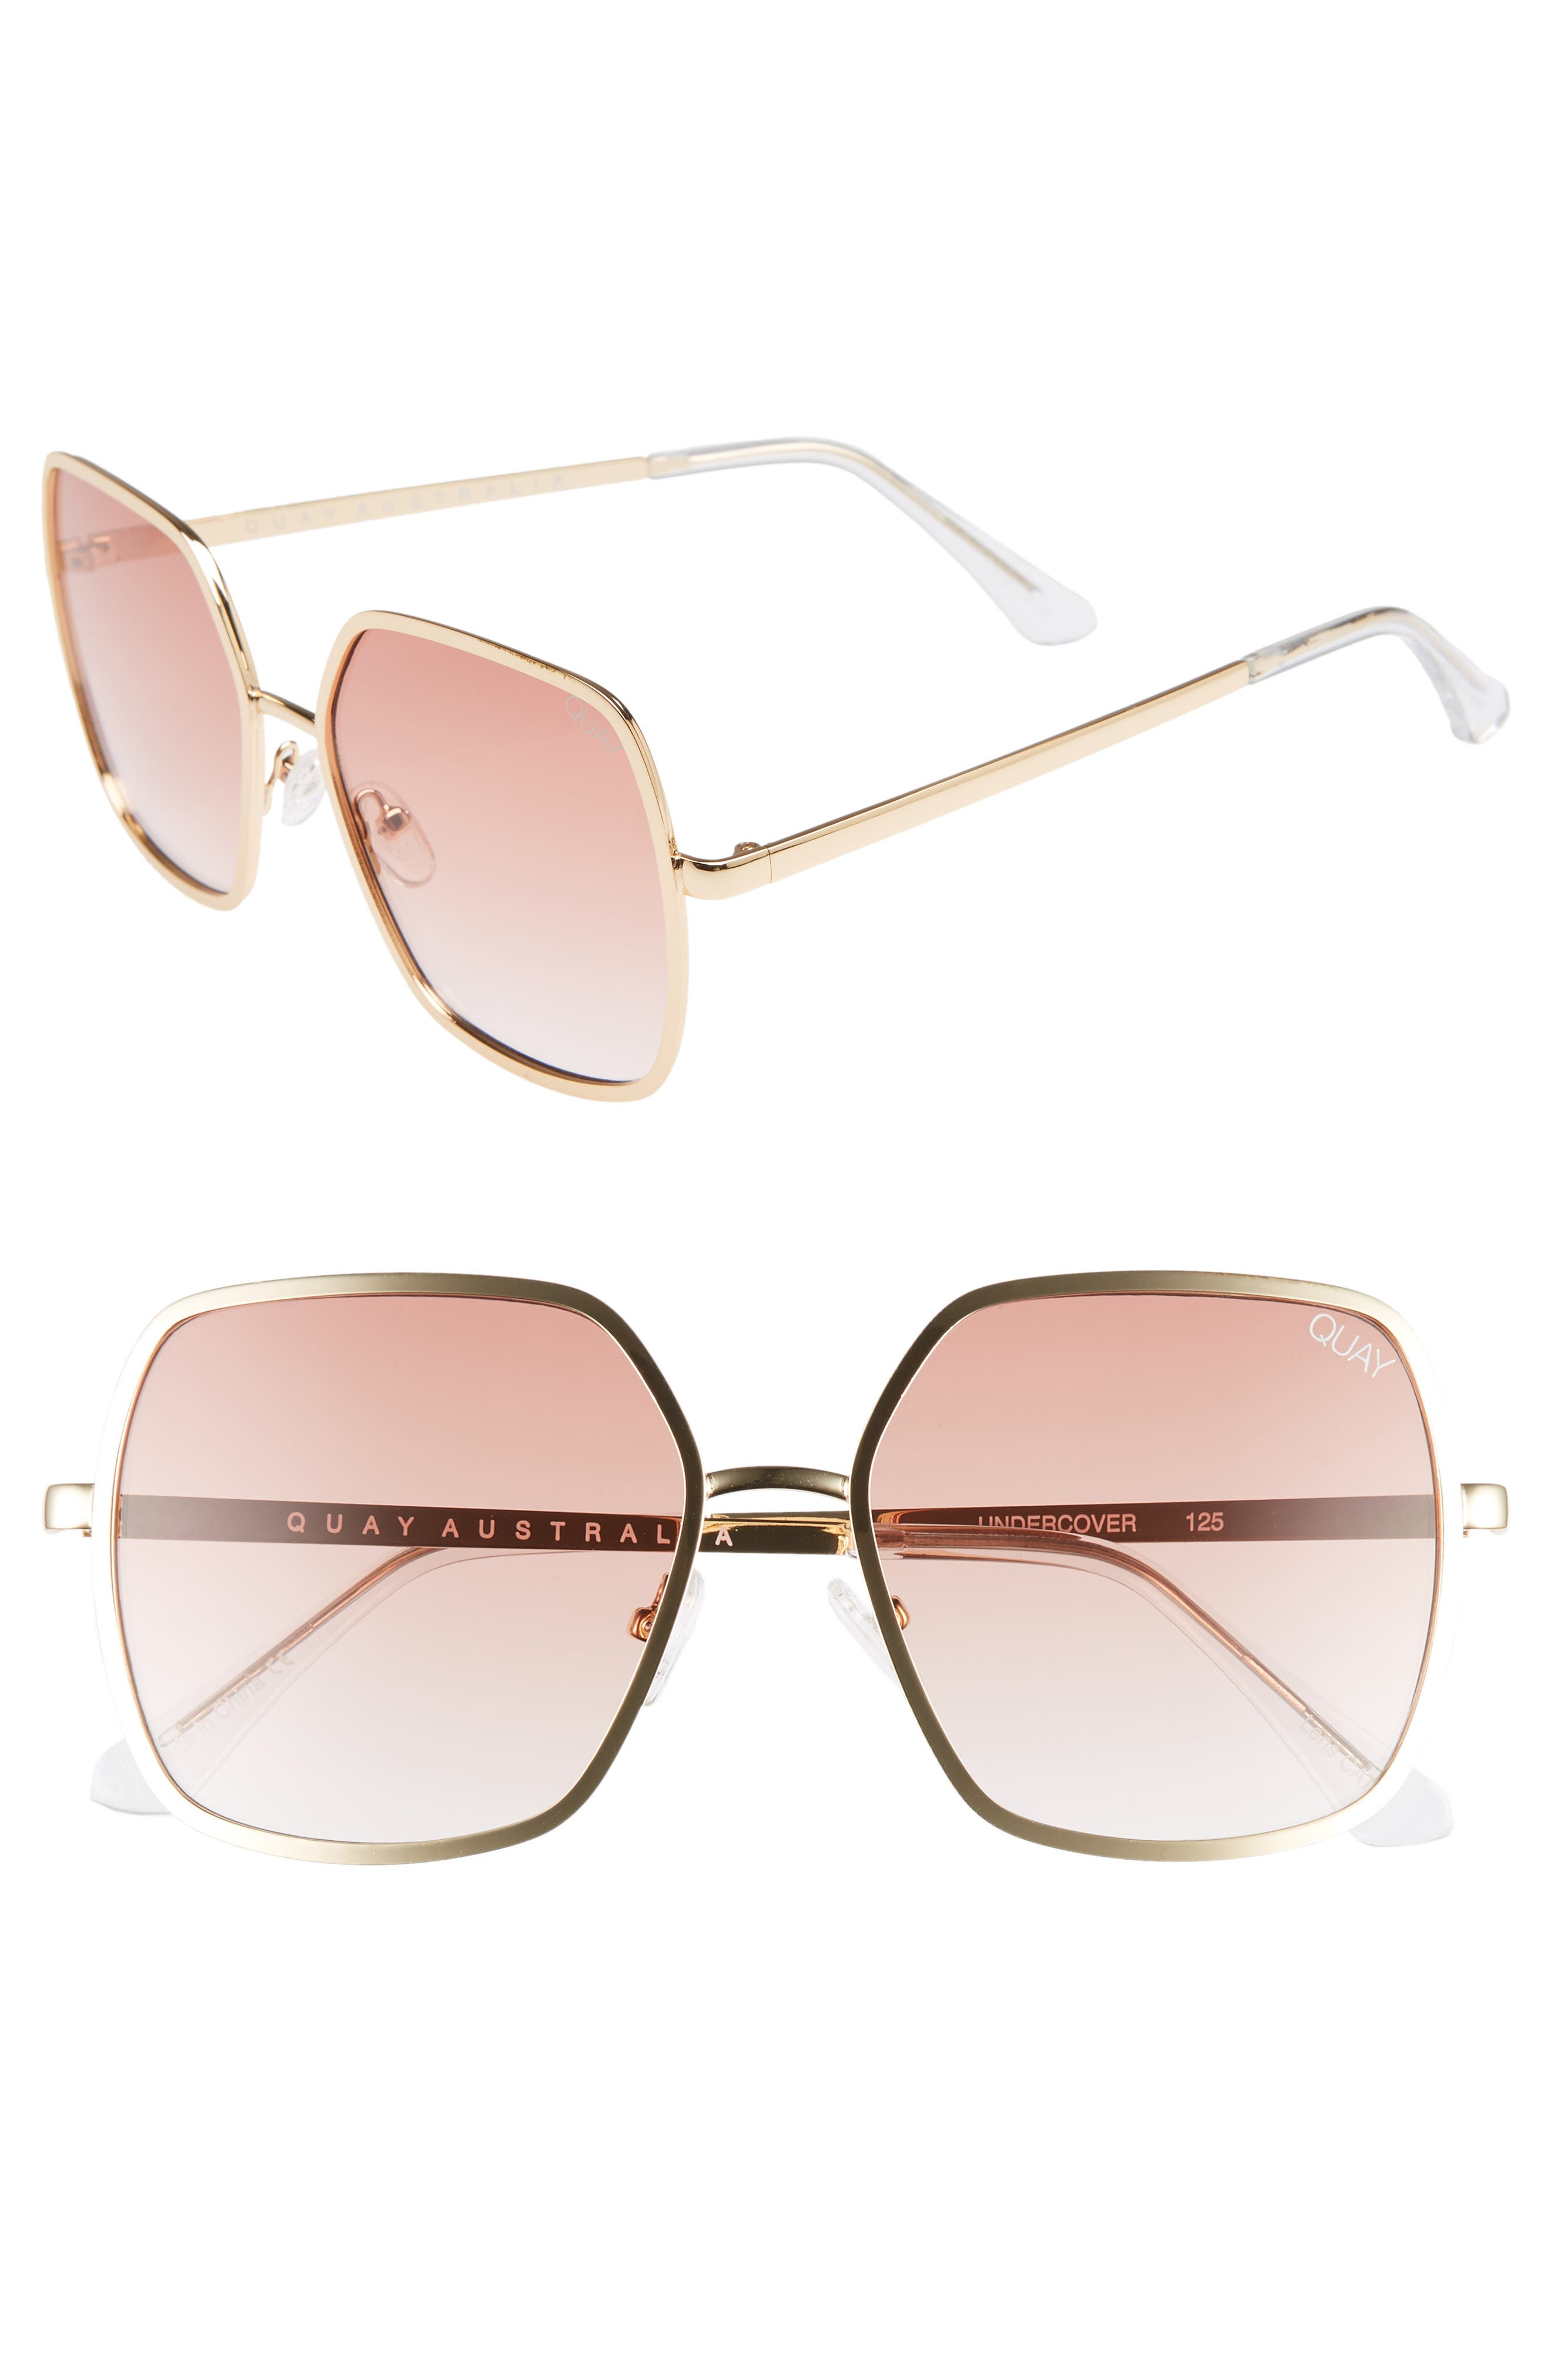 Undercover 57mm Square Sunglasses,                             Main thumbnail 1, color,                             GOLD/ PEACH